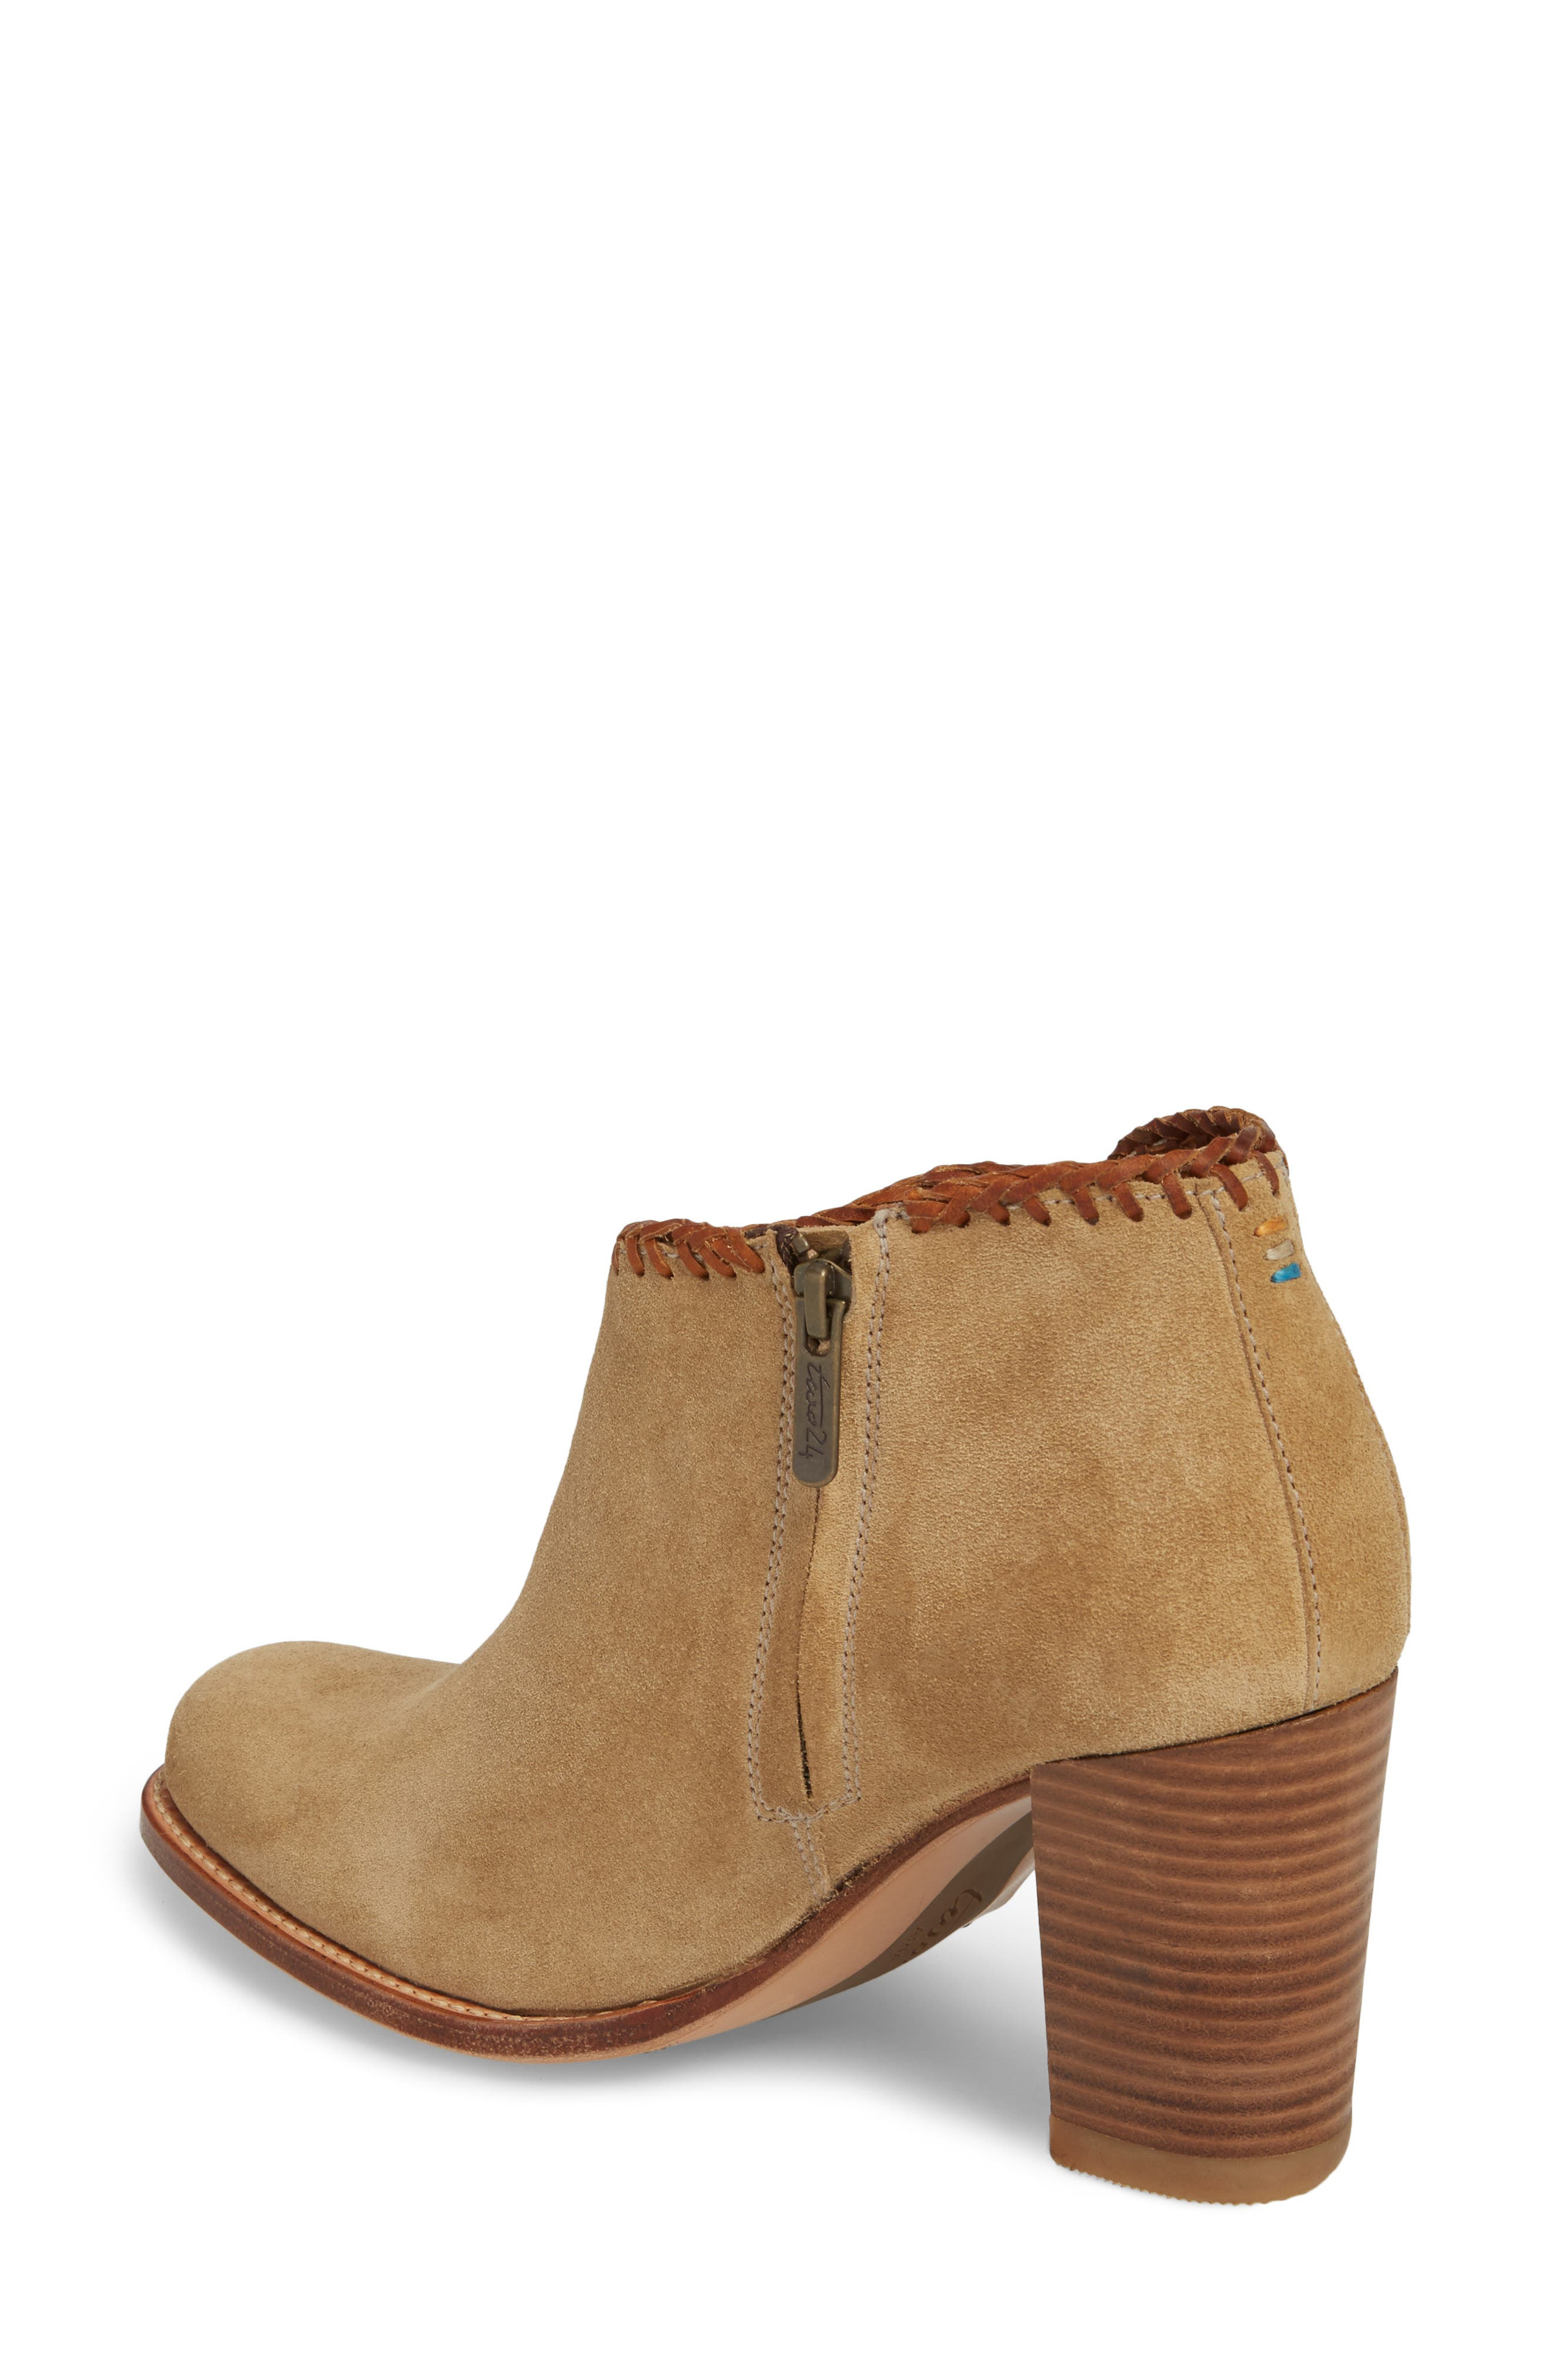 Sonya Fringed Bootie,                             Alternate thumbnail 2, color,                             250